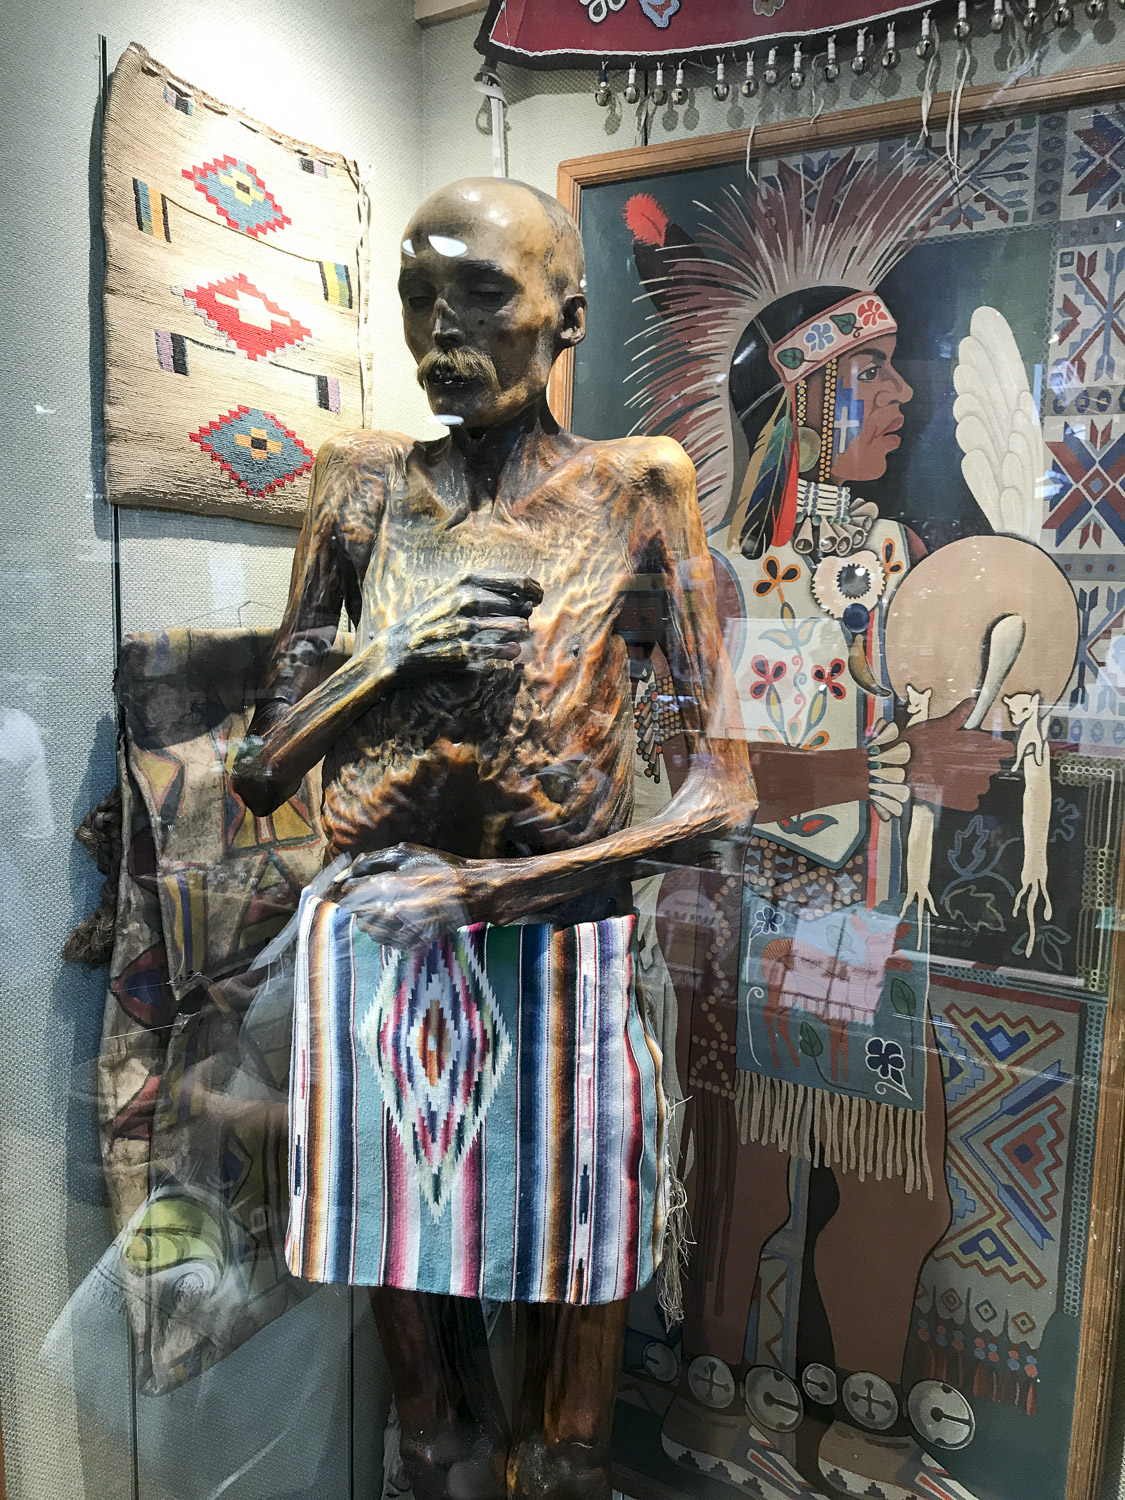 Sylvester at Ye Old Curiosity Shop in Seattle